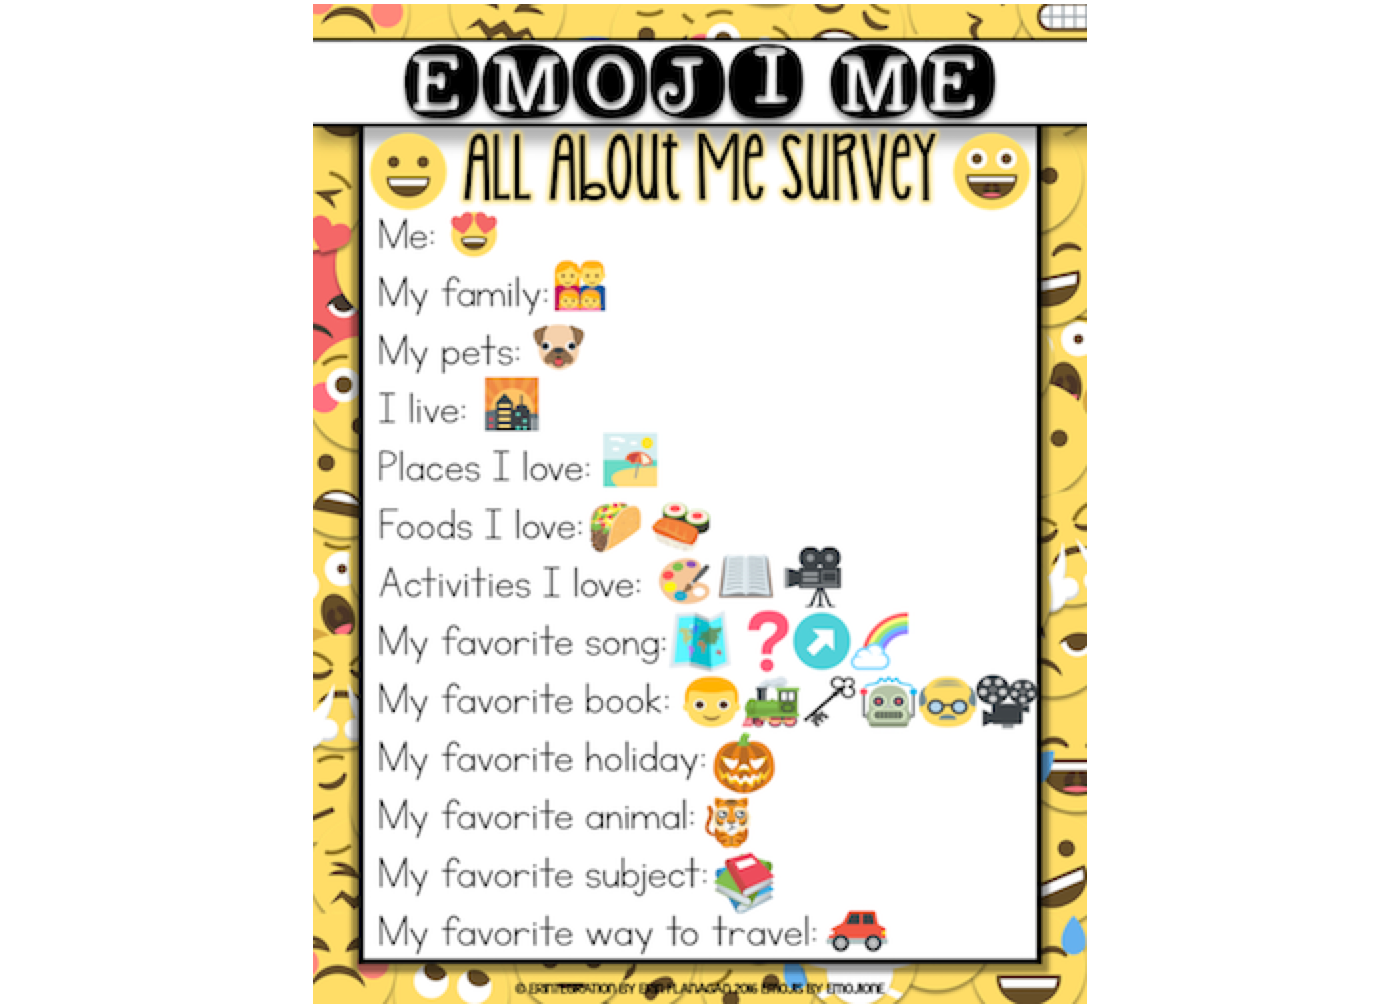 Emoji and child development emojione blog you use your ipad interactive all about me emoji surveys with your students we thought it would be fun if you filled out one for us buycottarizona Image collections